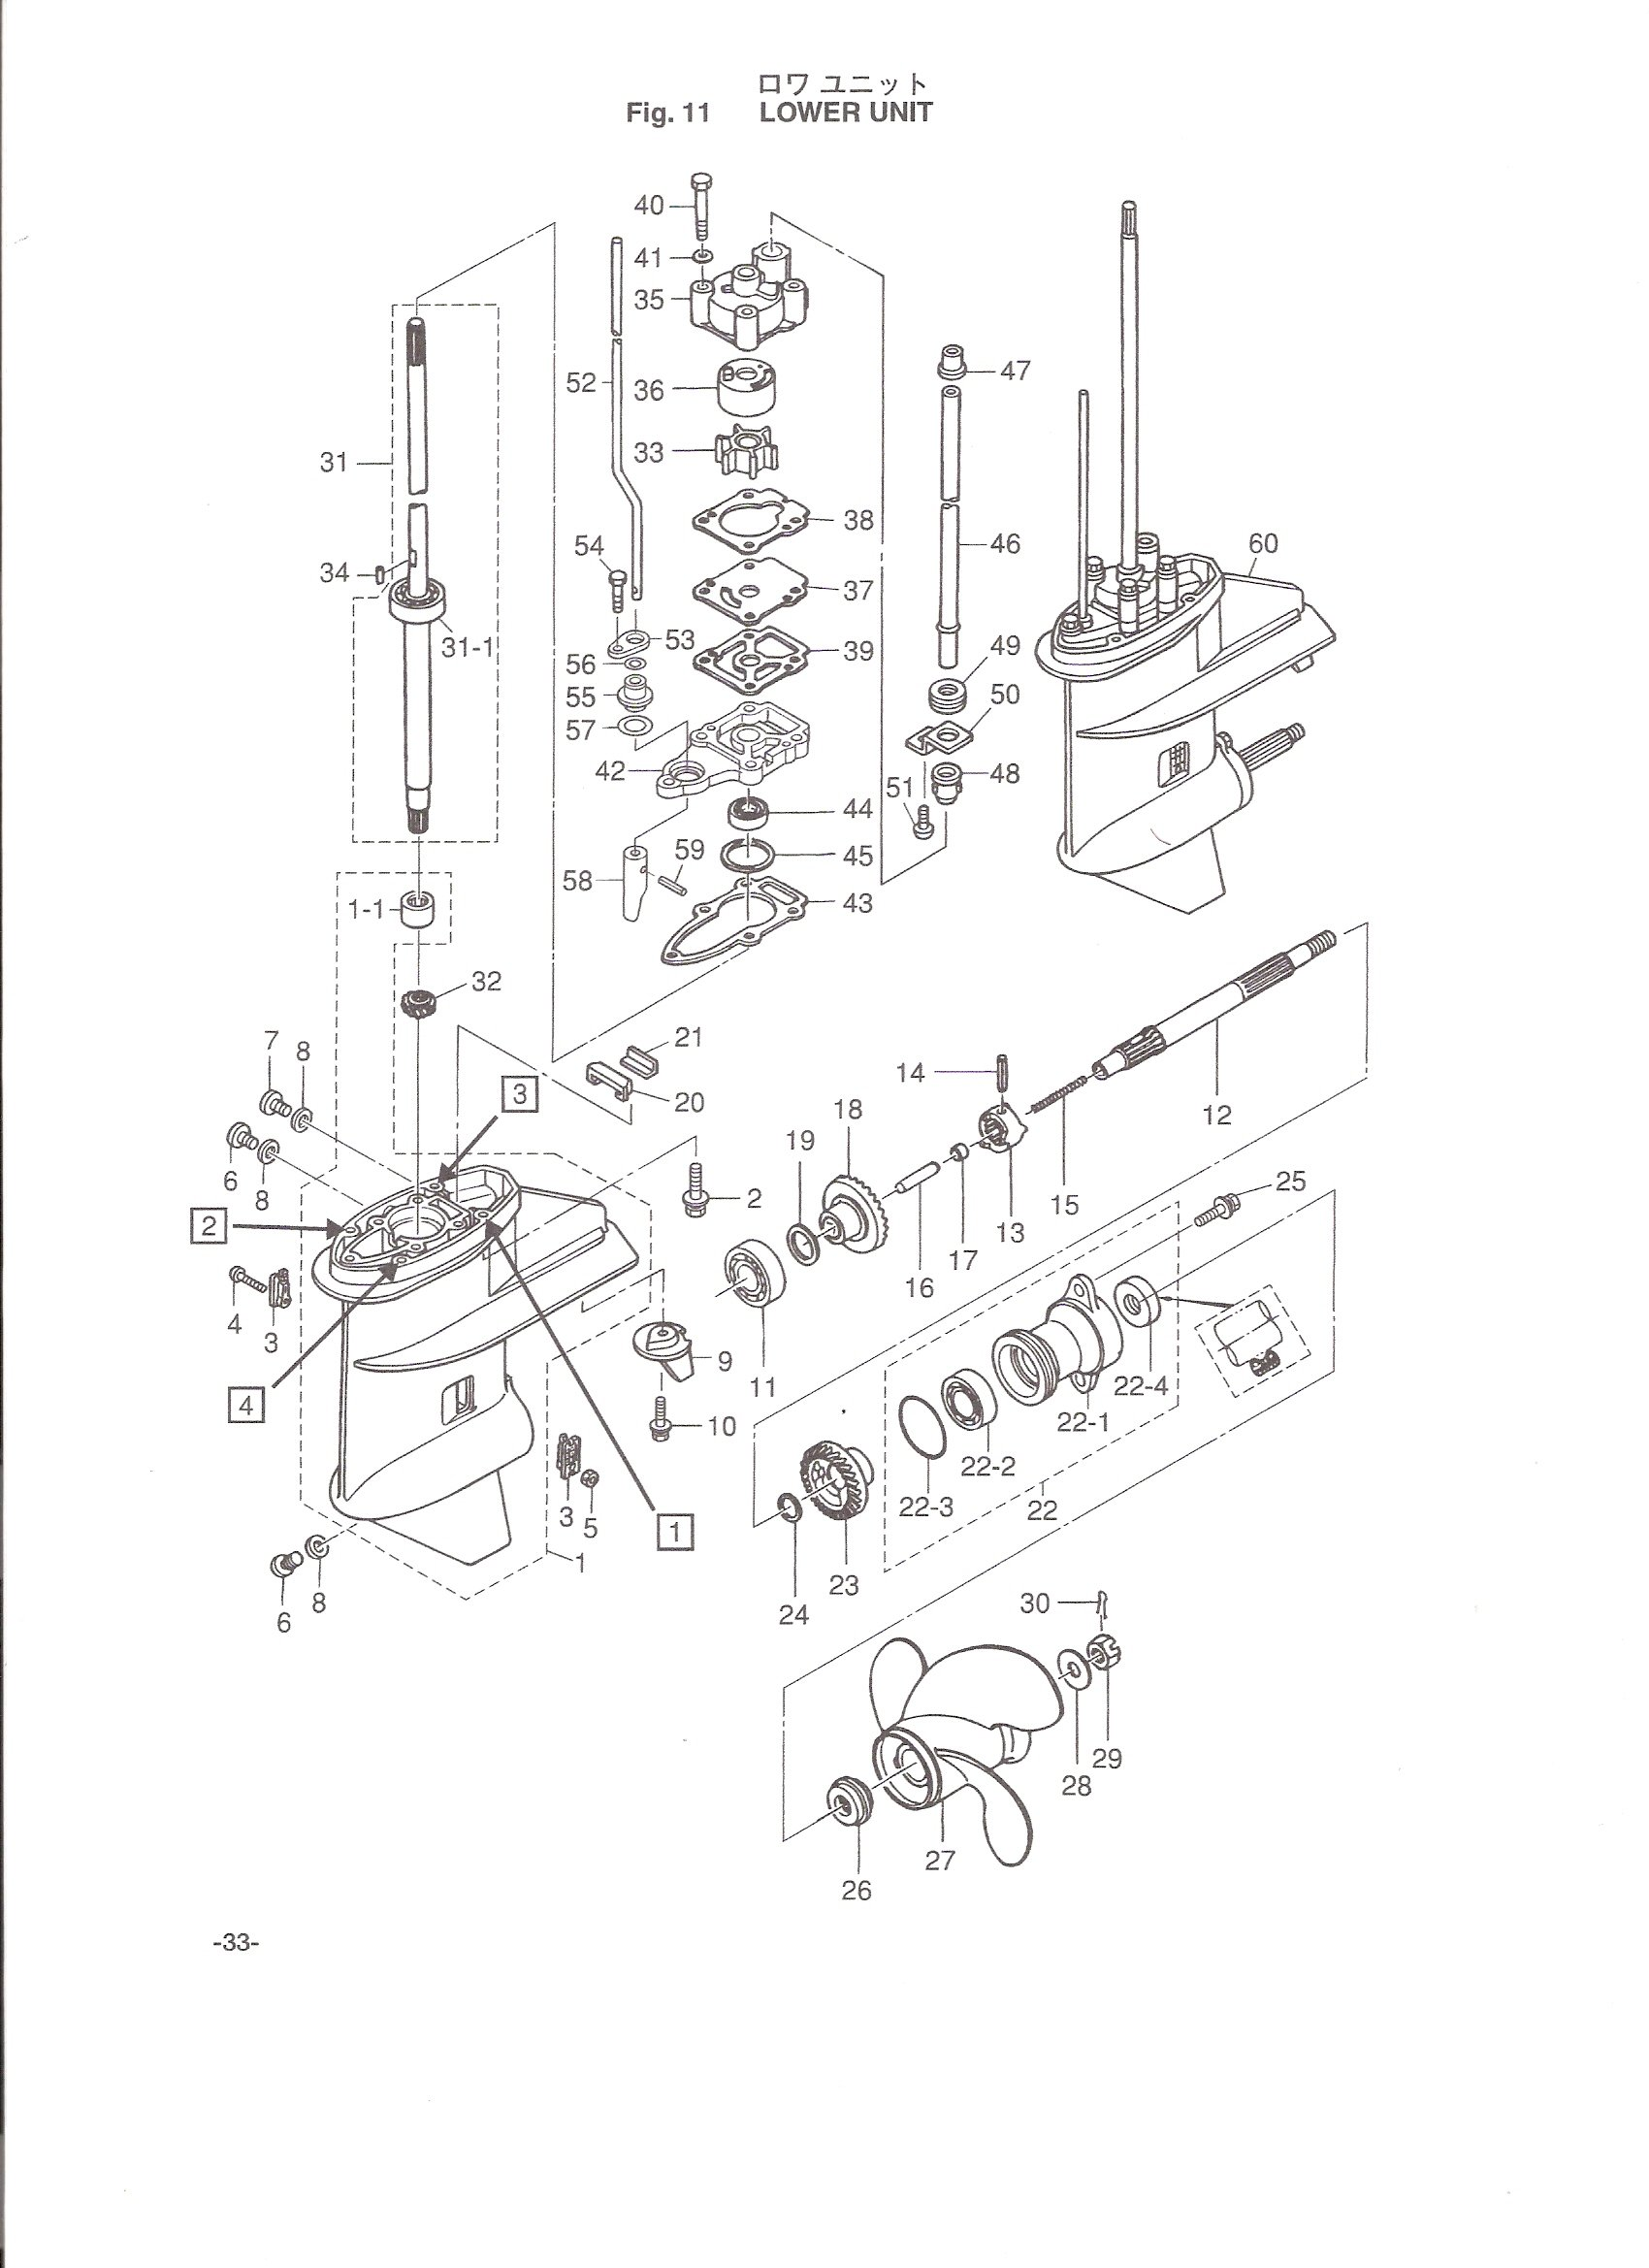 please supply diagram showing how to service leg of 9 8hp